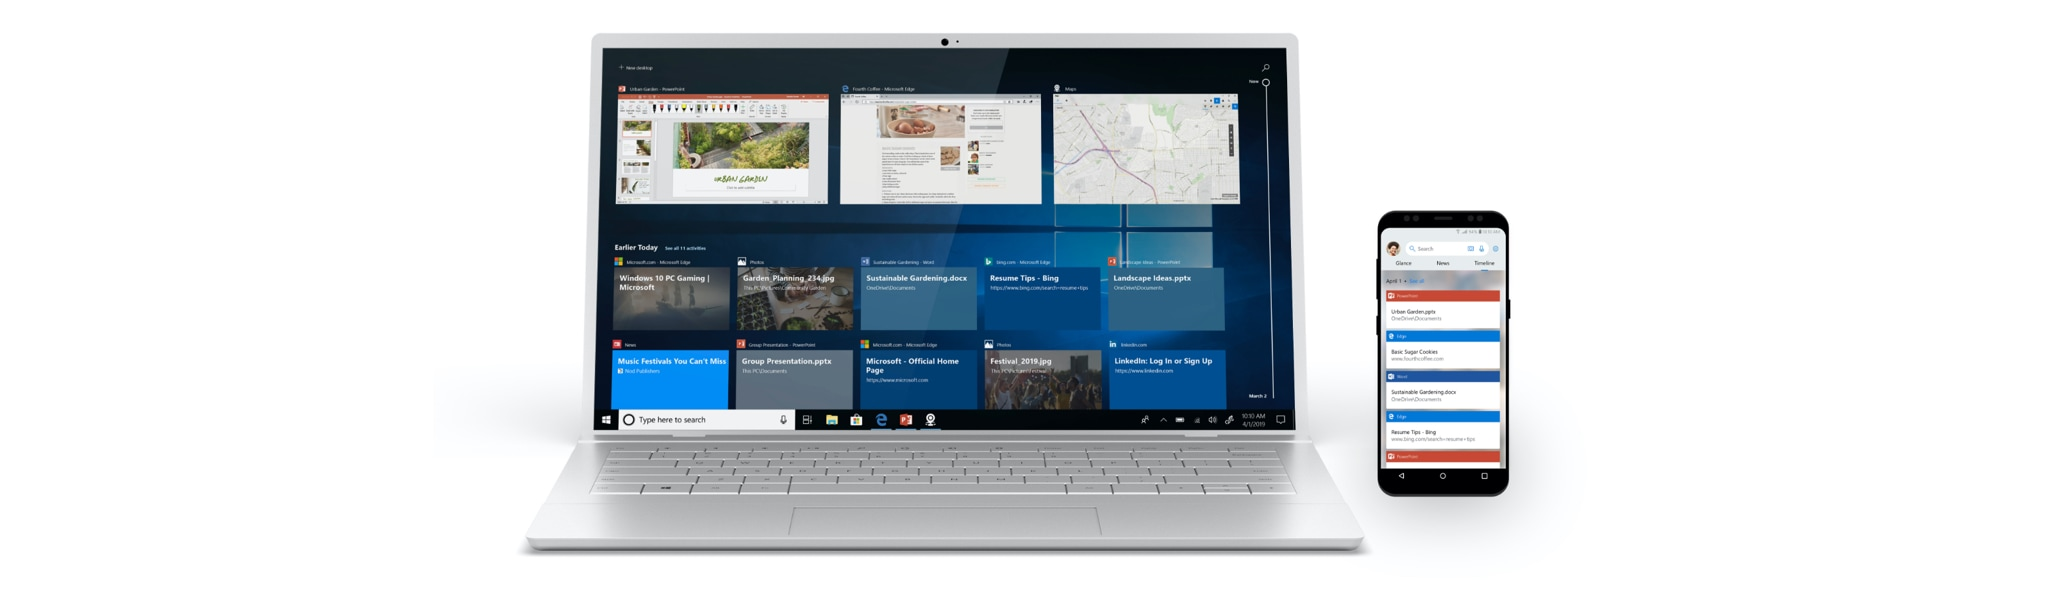 A laptop and phone showing Windows Timeline on the screens